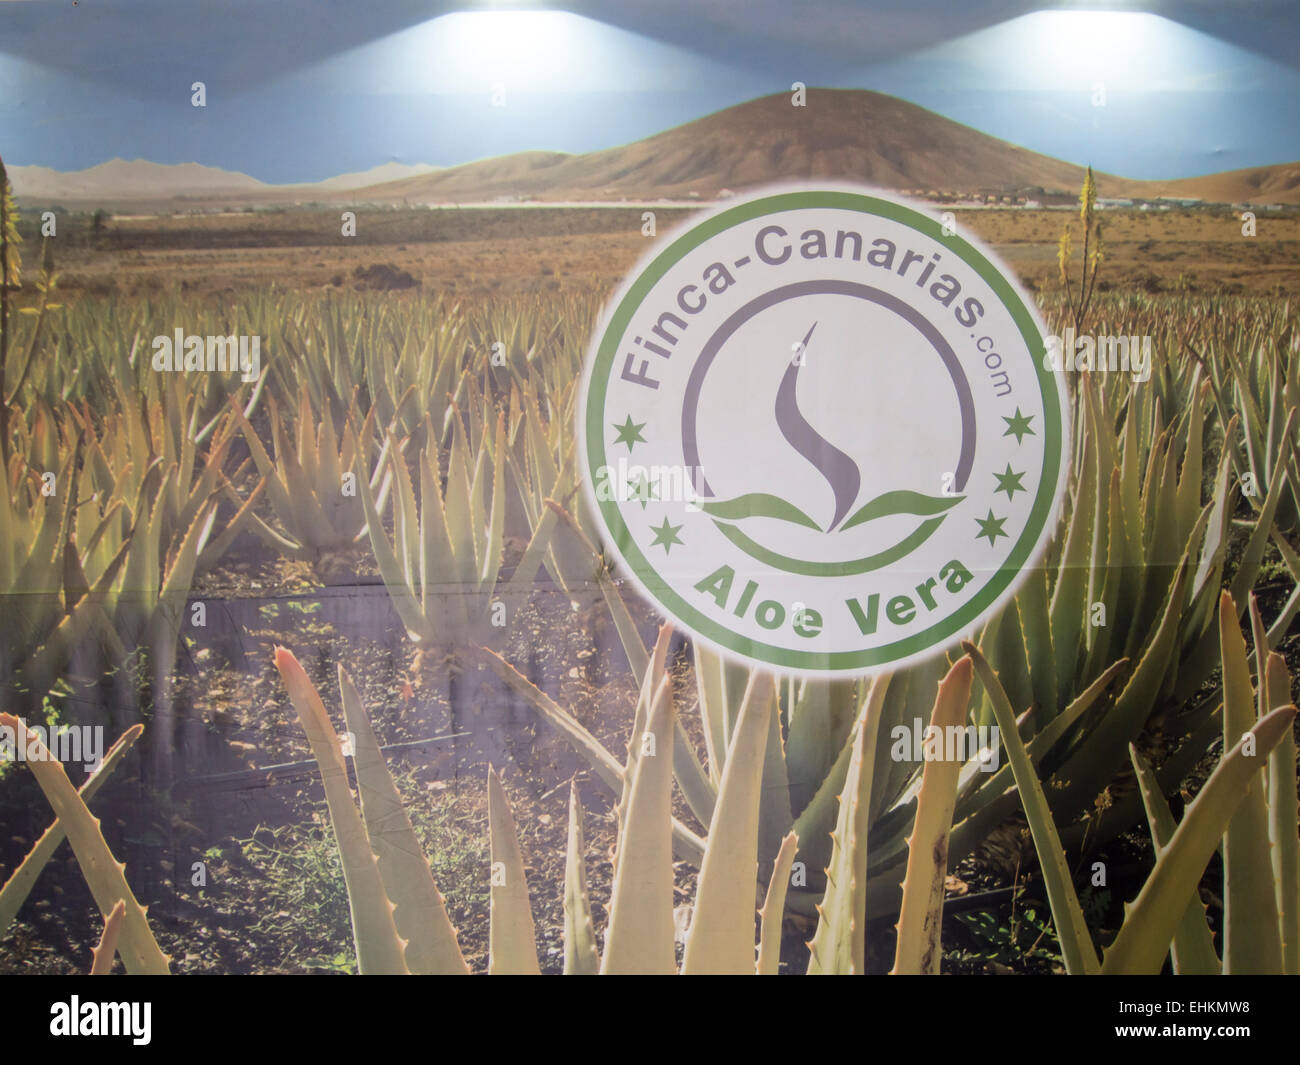 Big wall poster advertising the company  Finca- Canarias involved in Aloe Vera plantation and products, Fuerteventura, - Stock Image